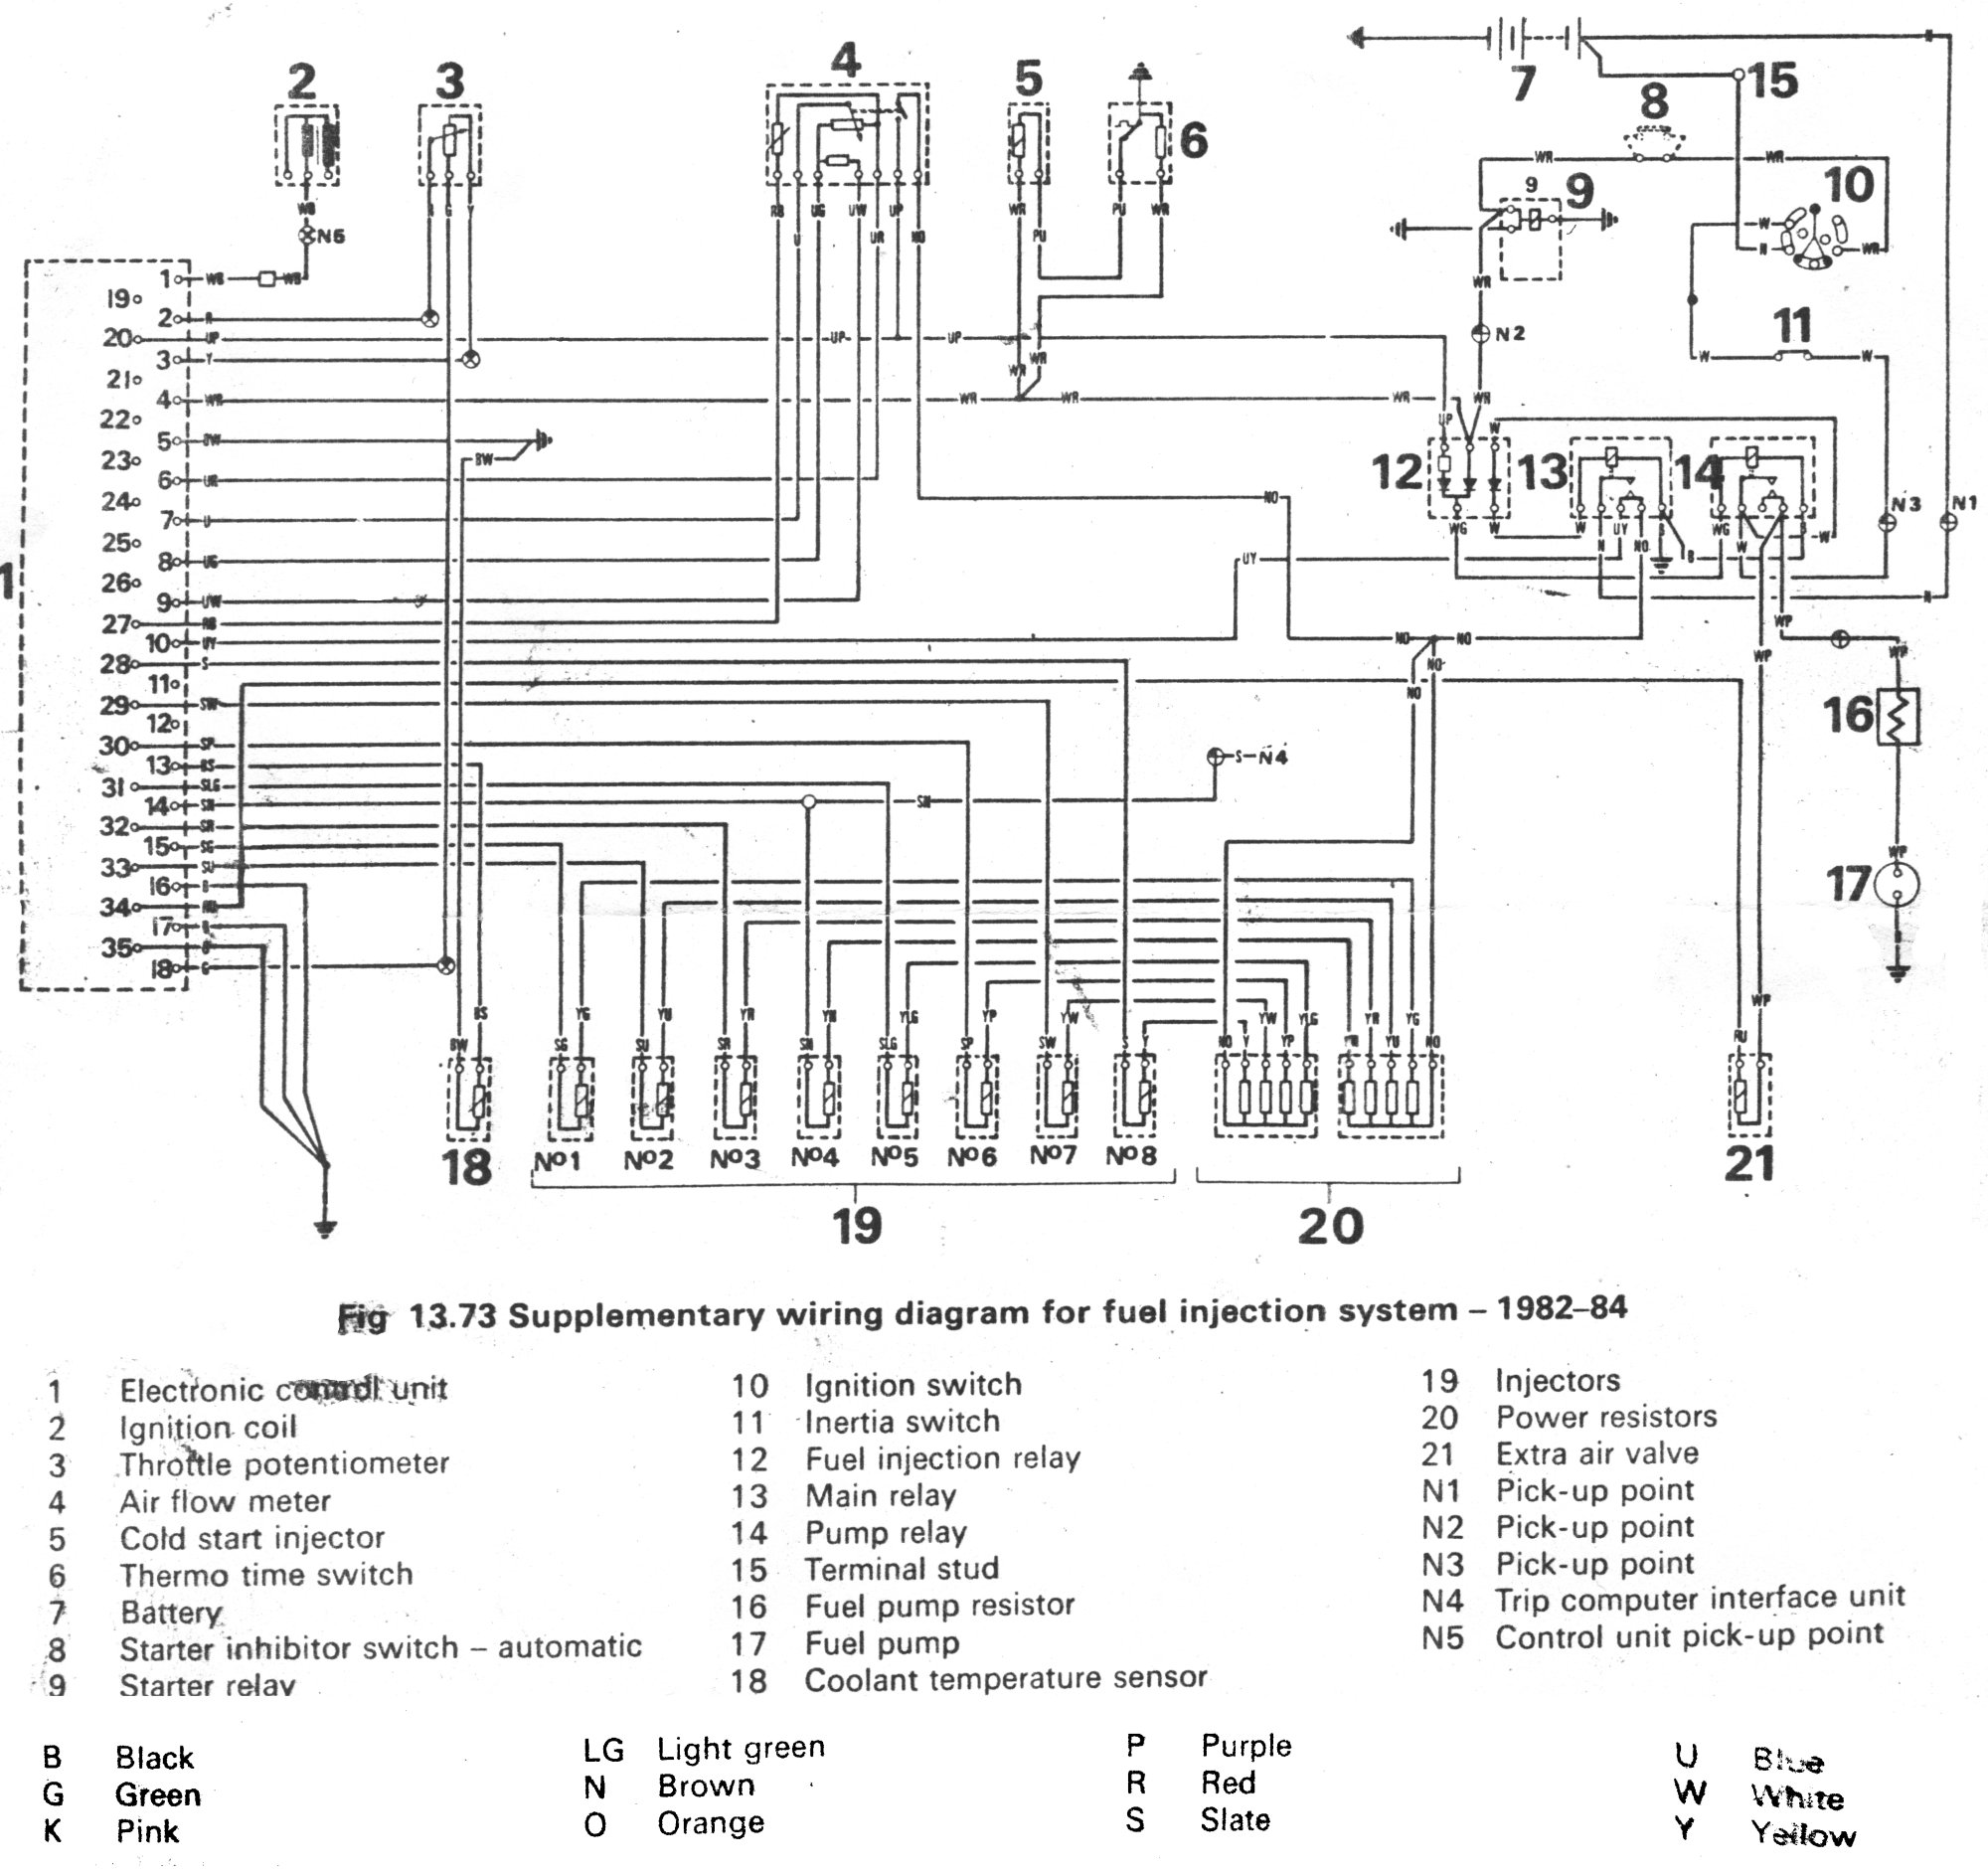 hight resolution of land rover starter wiring diagram additionally vw golf wiring click image for larger versionname67 diagram wiresjpgviews5896size